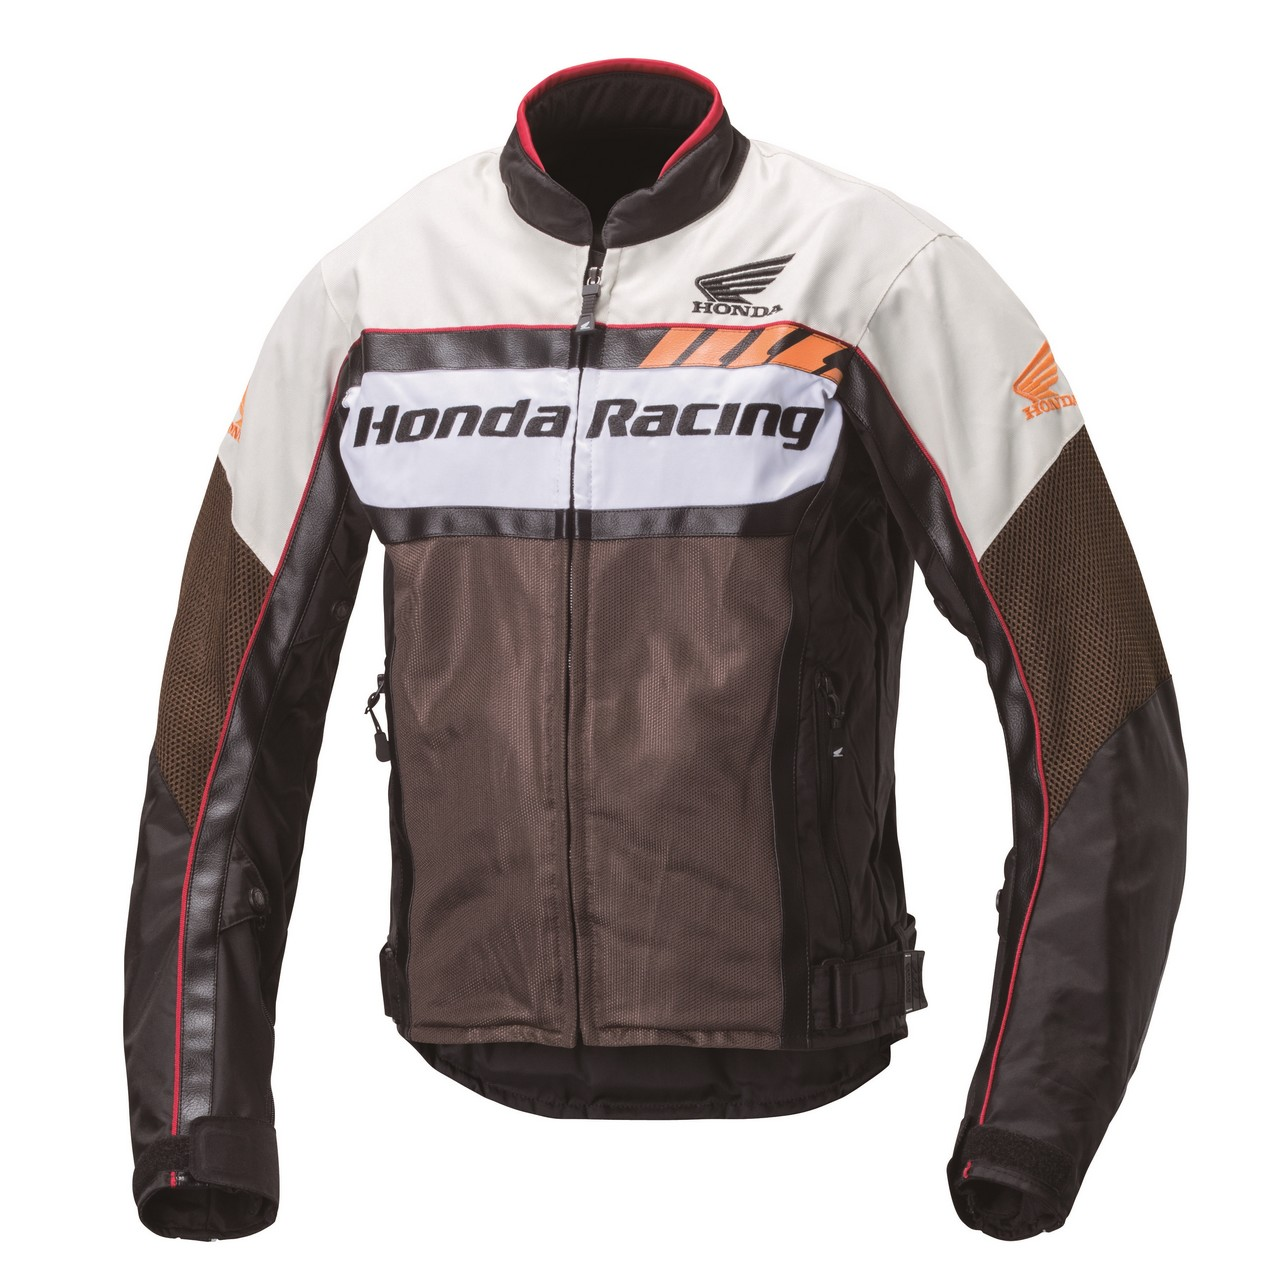 HONDA RIDING GEAR Блезон с графическим рисунком